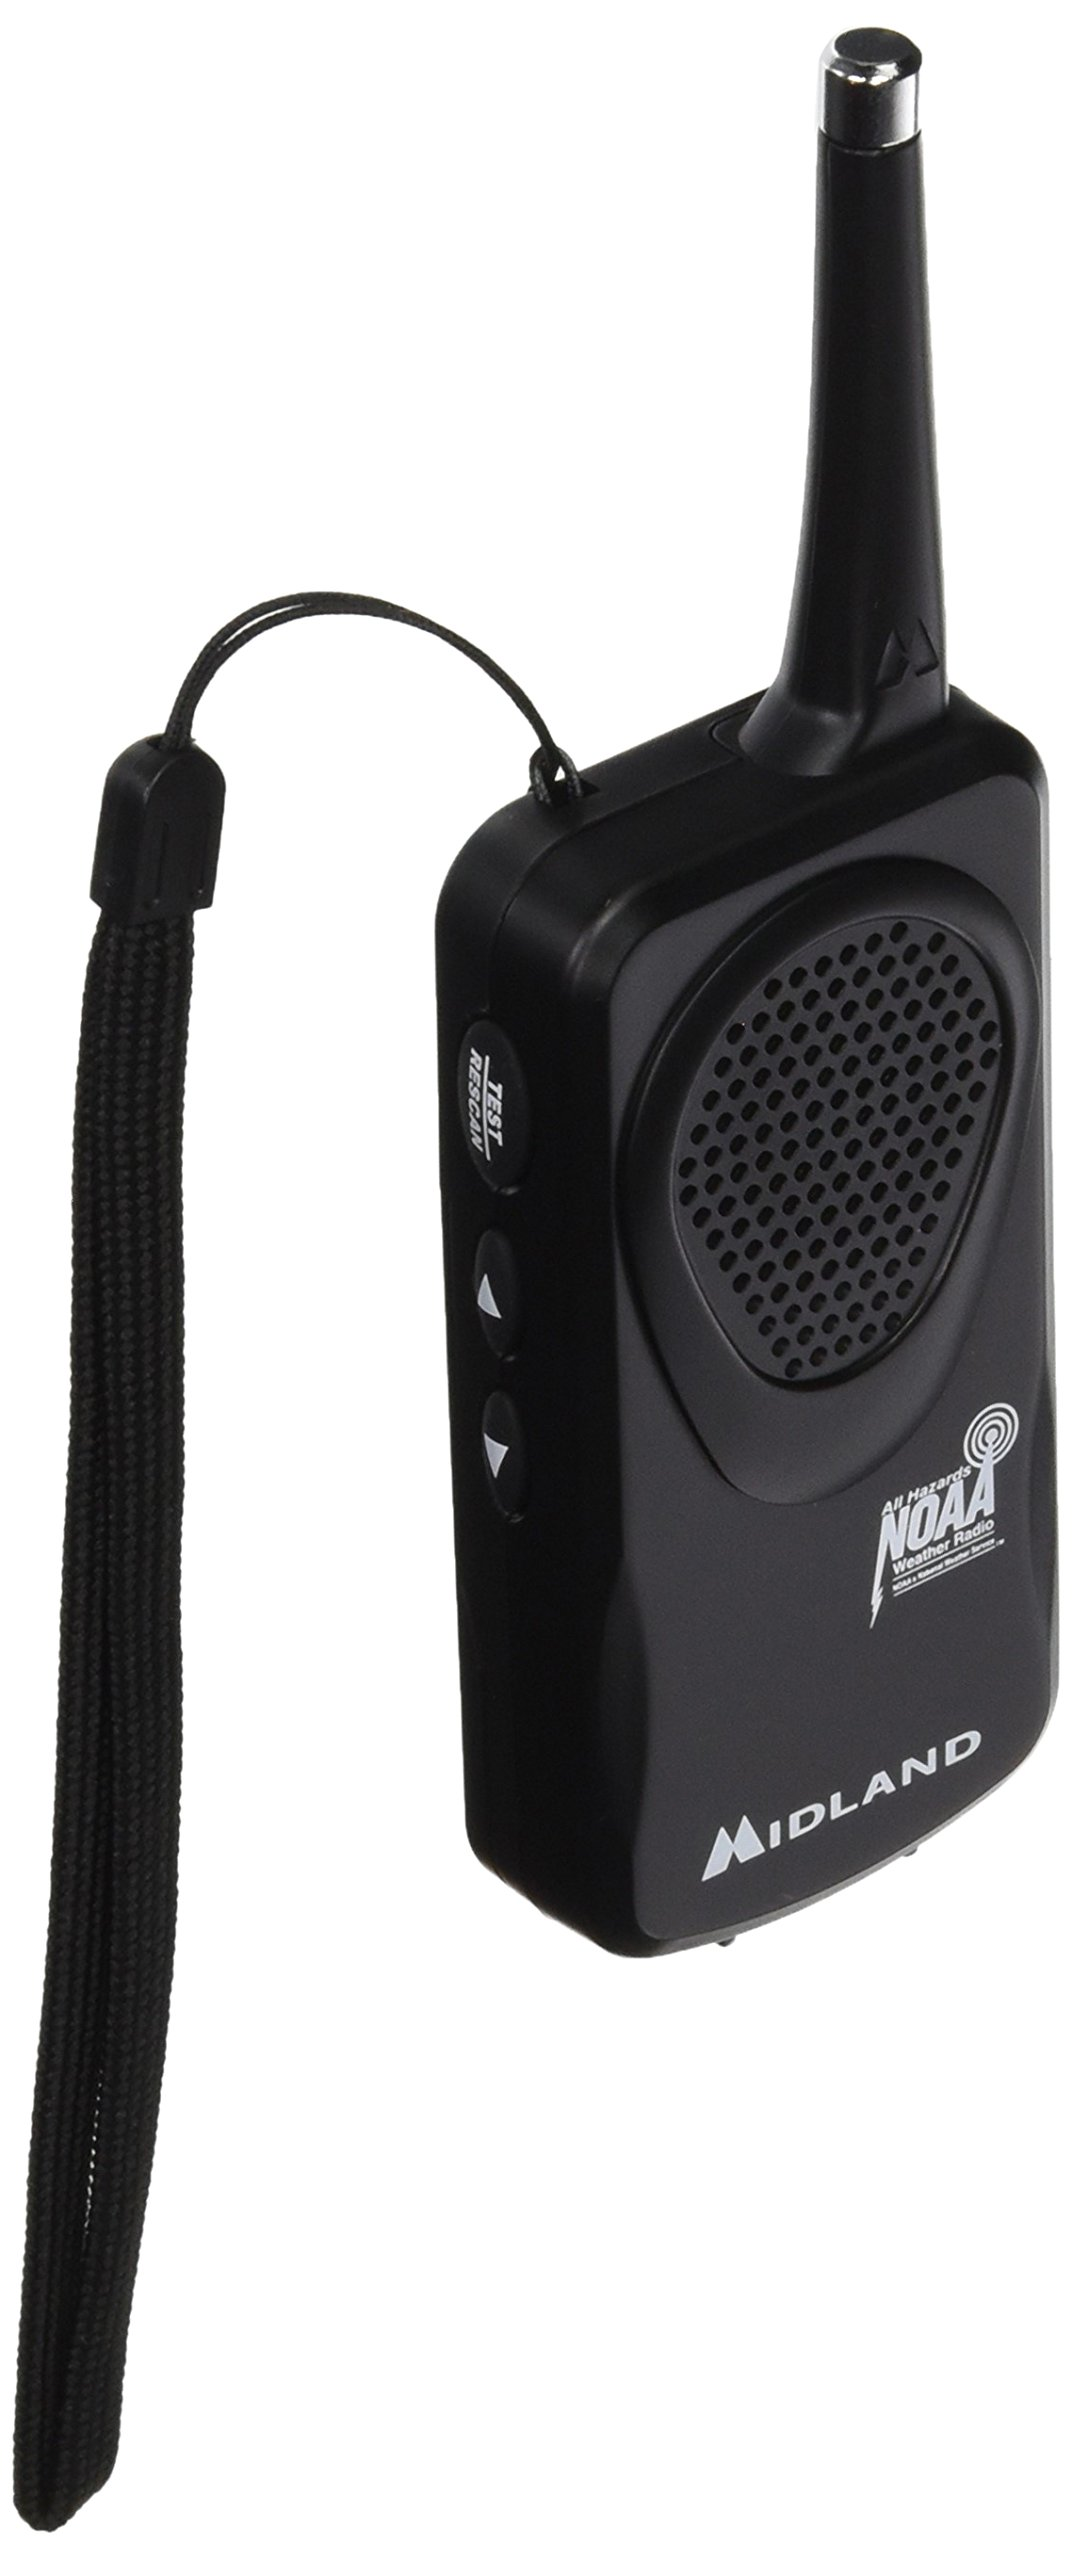 Midland Consumer Weather Radio Black (HH50B)